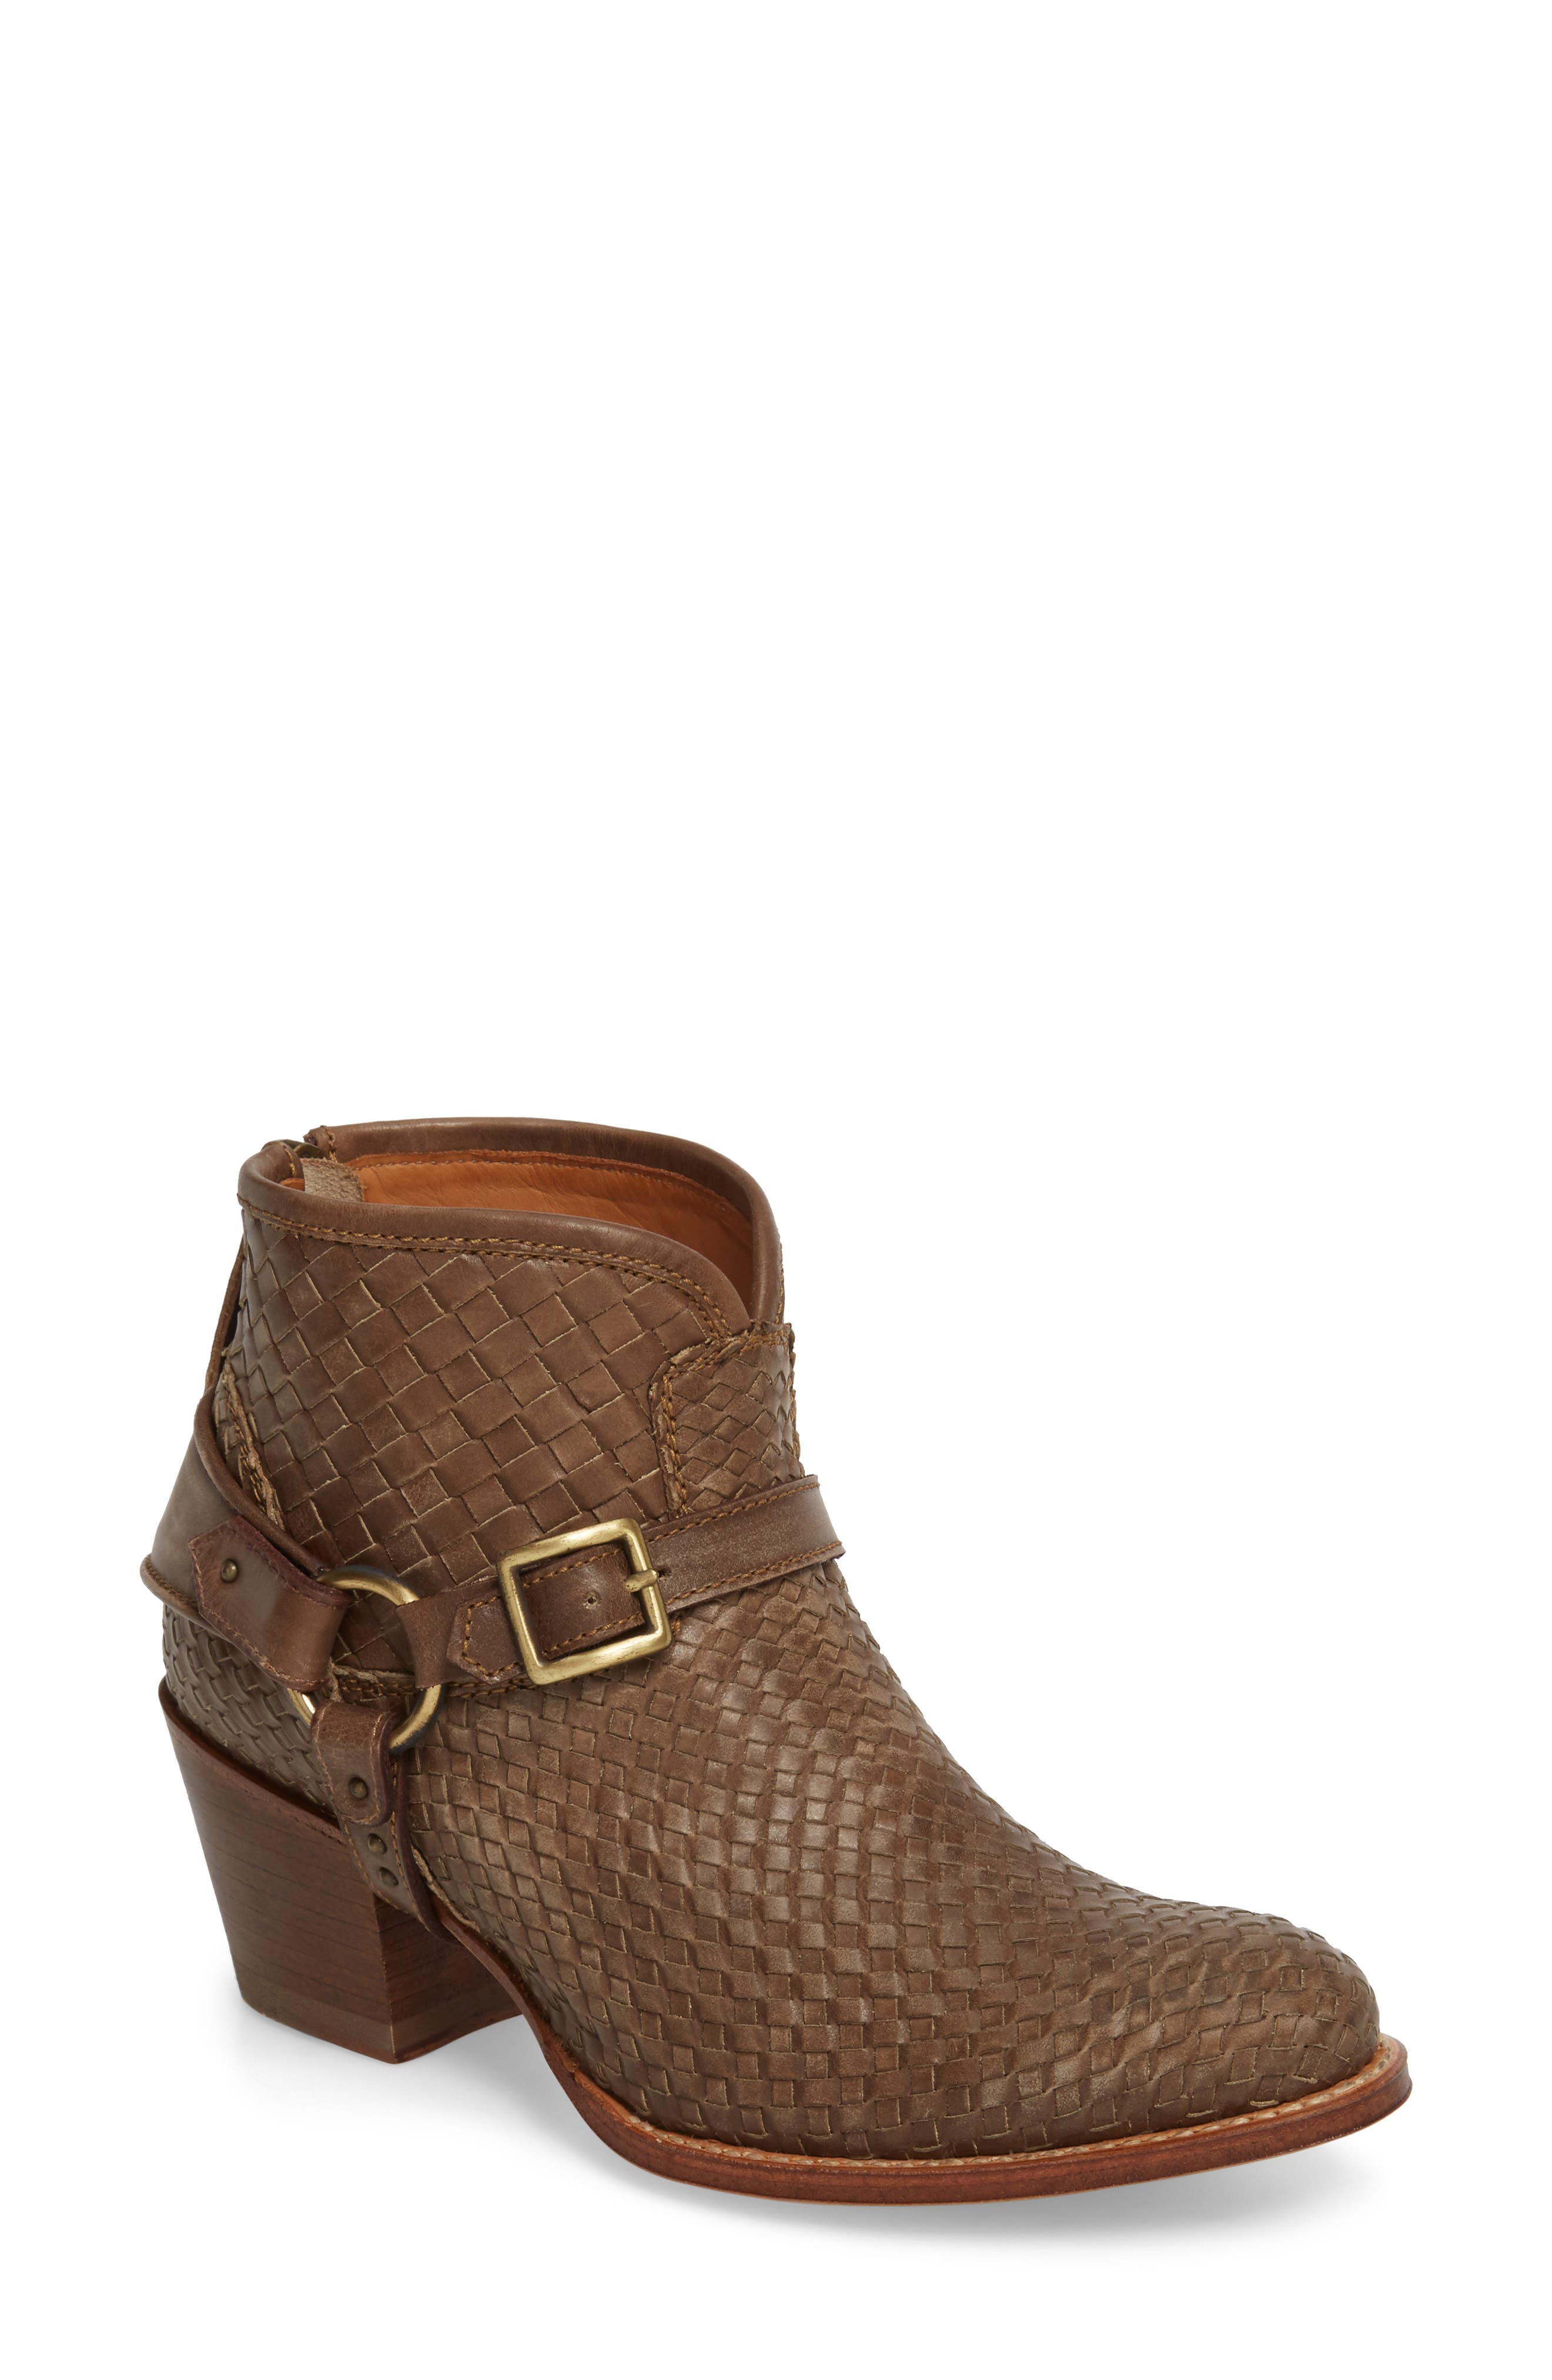 Two24 by Ariat Sollana Bootie,                             Main thumbnail 1, color,                             Brown Leather